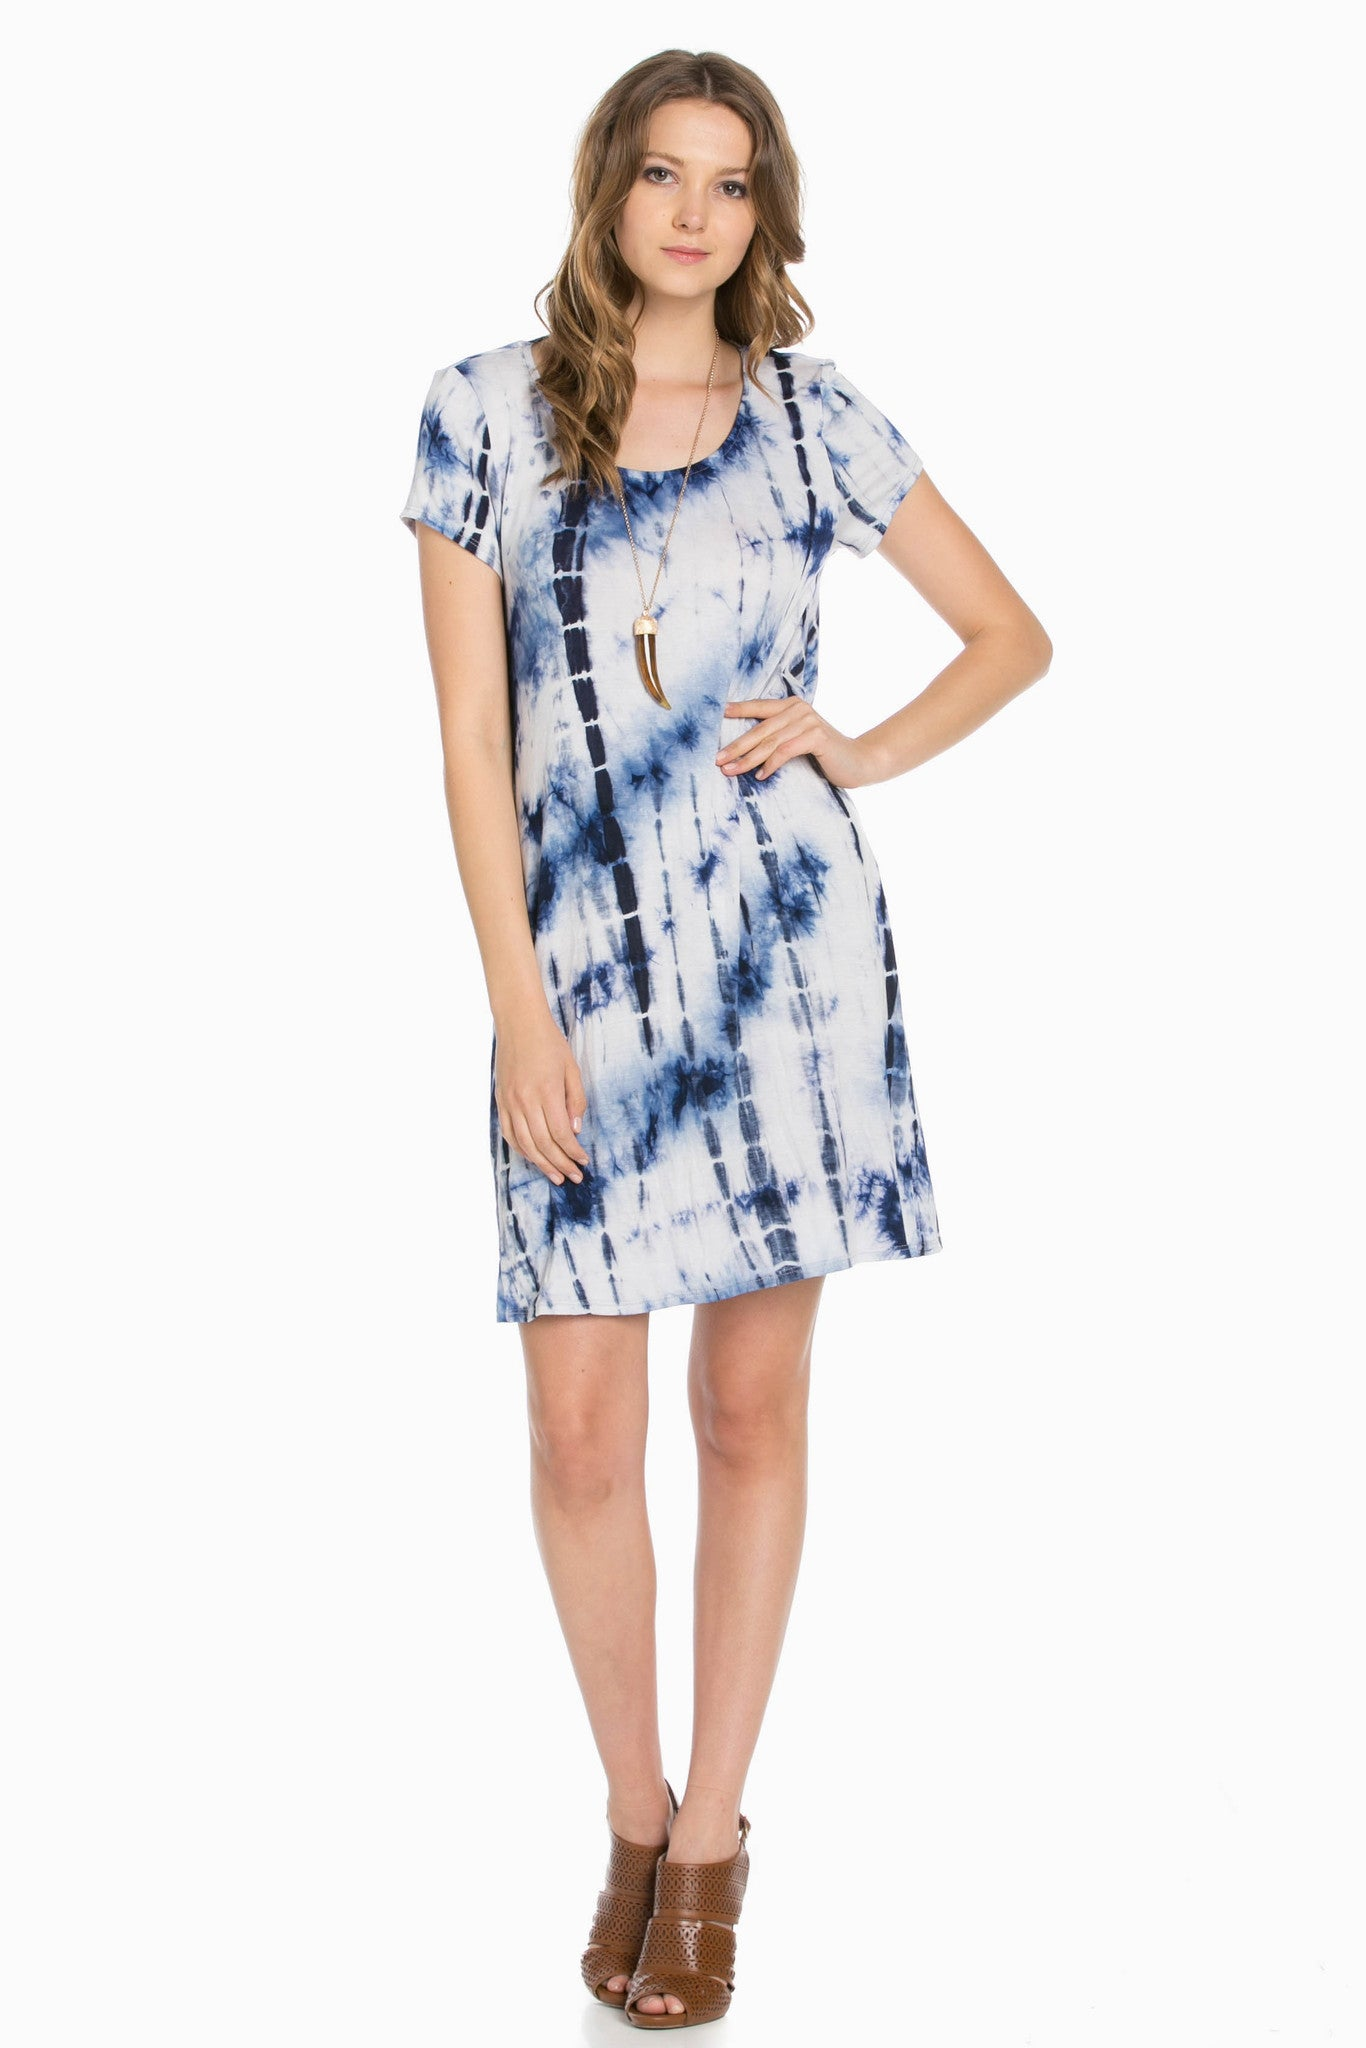 Open Back Blue Tie Dye Dress - Dresses - My Yuccie - 2